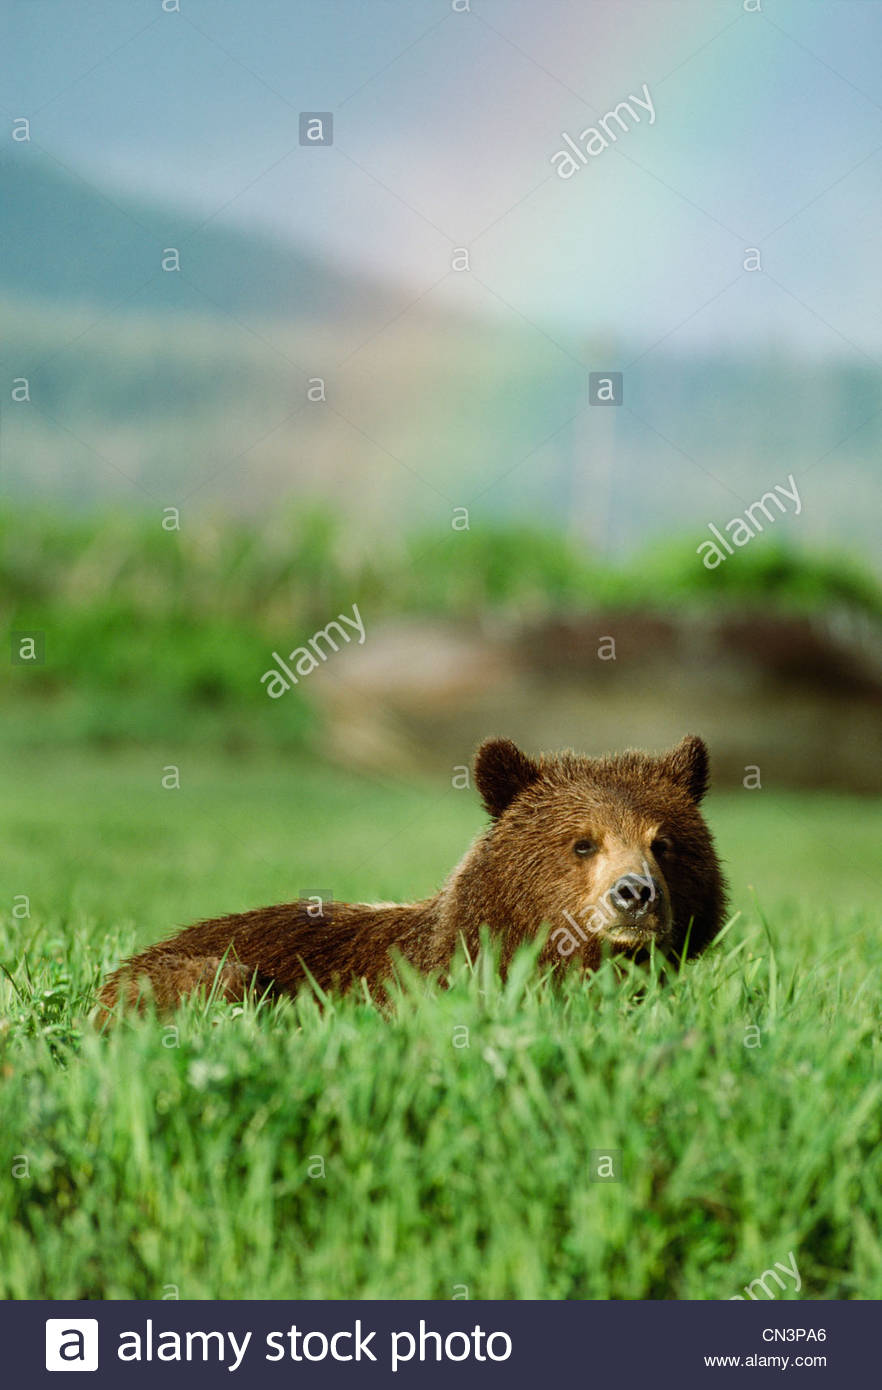 A brown bear in field of tall grass with a rainbow in the background, Alaska, USA - Stock Image